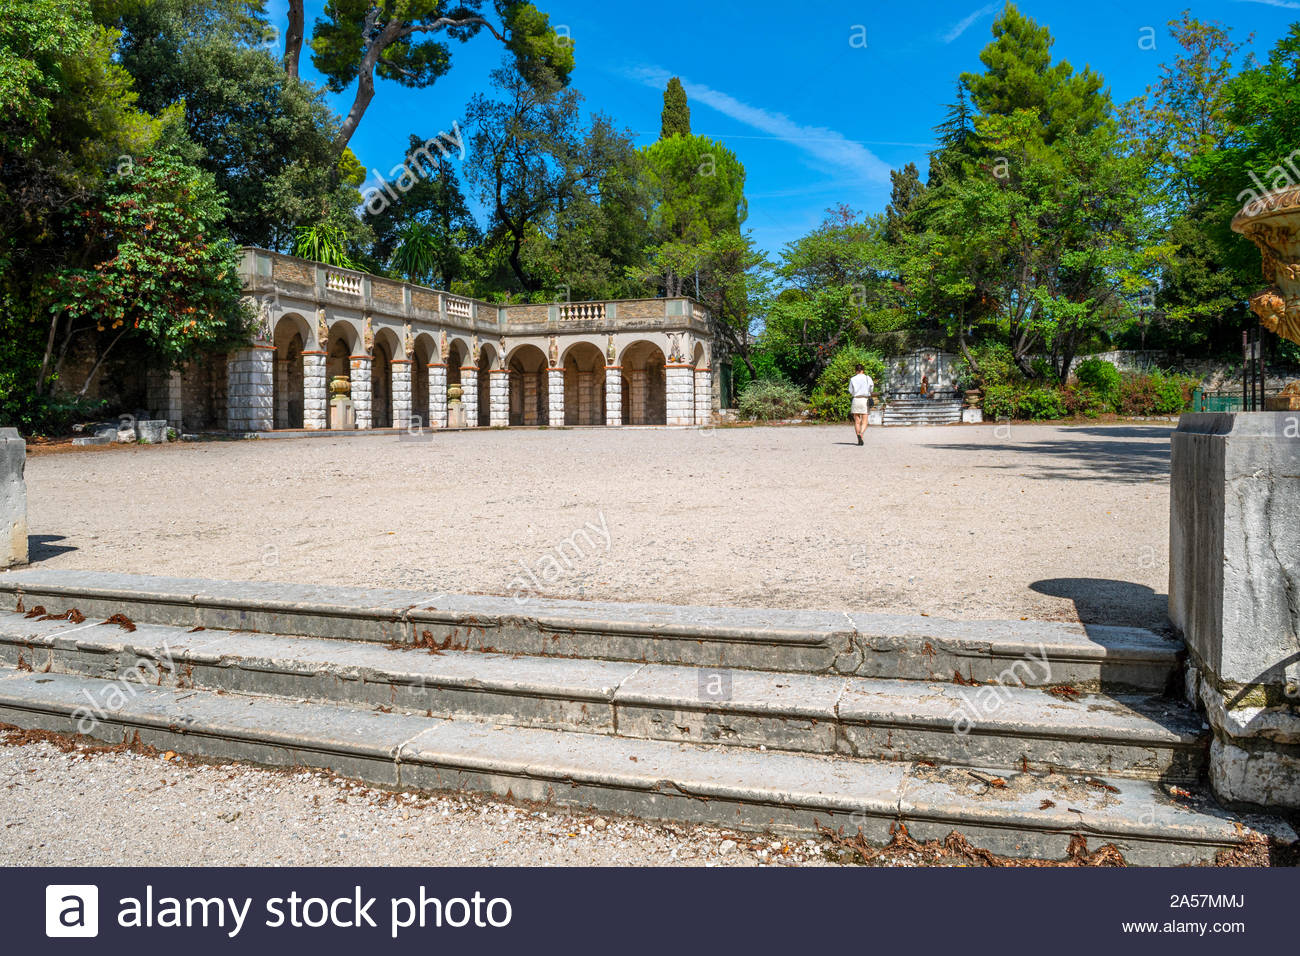 A solo female traveler walks through a gravel courtyard near an arched Roman building on Castle Hill in Nice, France. Stock Photo